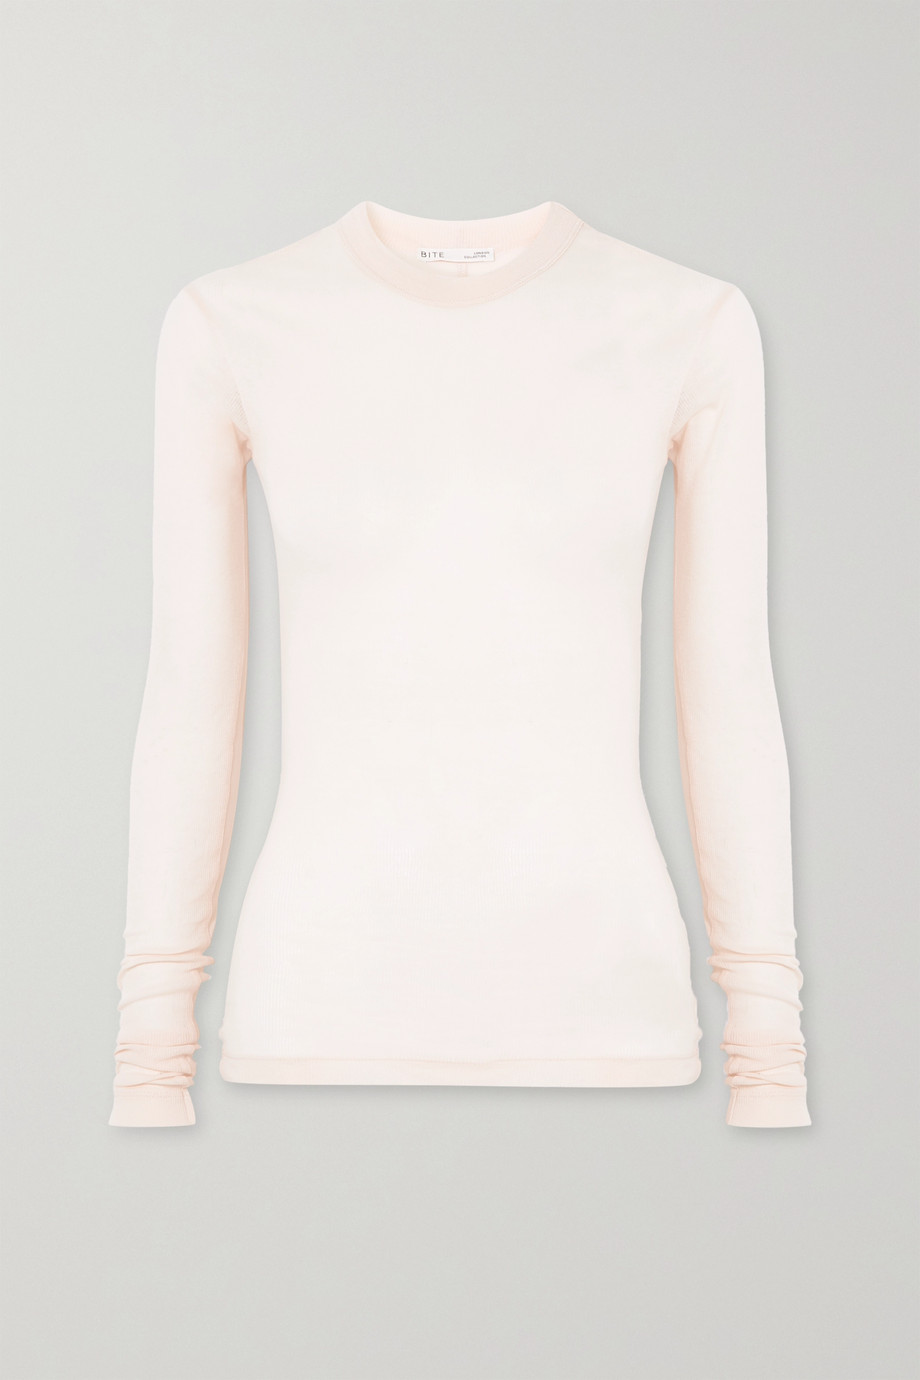 BITE Studios + NET SUSTAIN ribbed organic cotton-jersey top